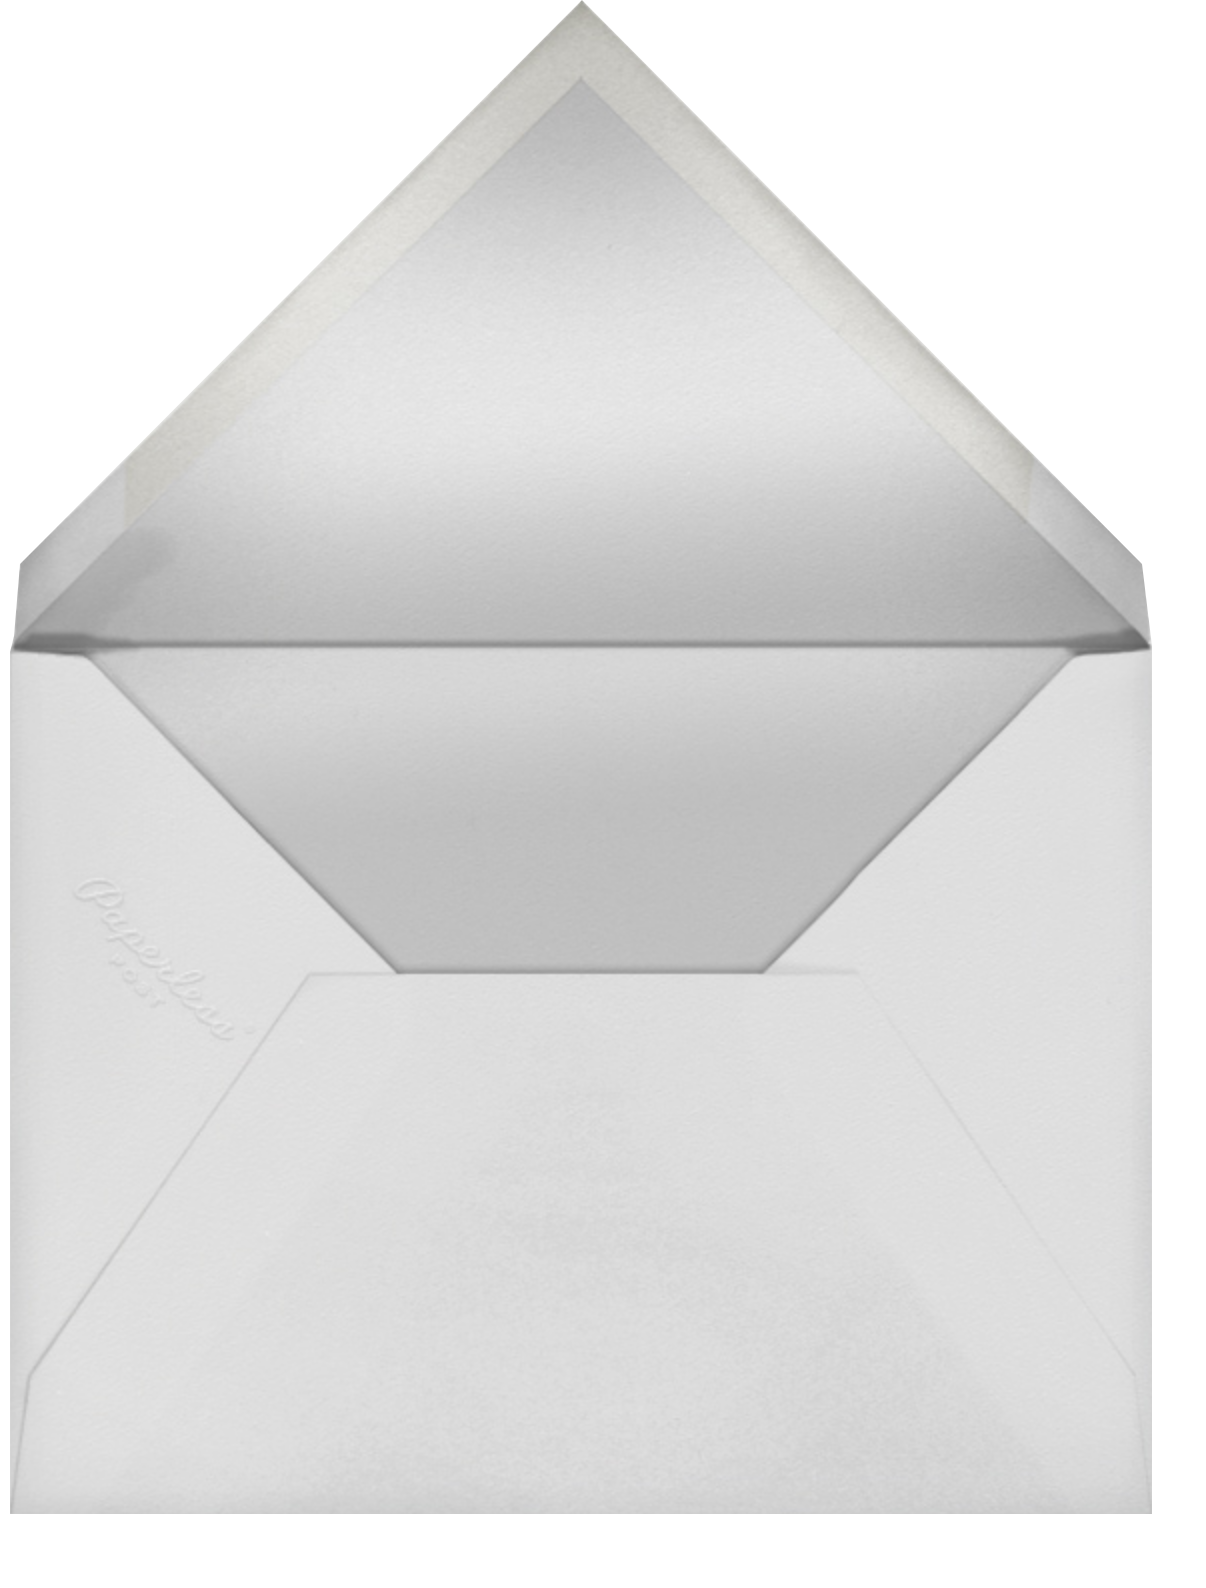 Sawtooth - Tall - Paperless Post - Graduation party - envelope back